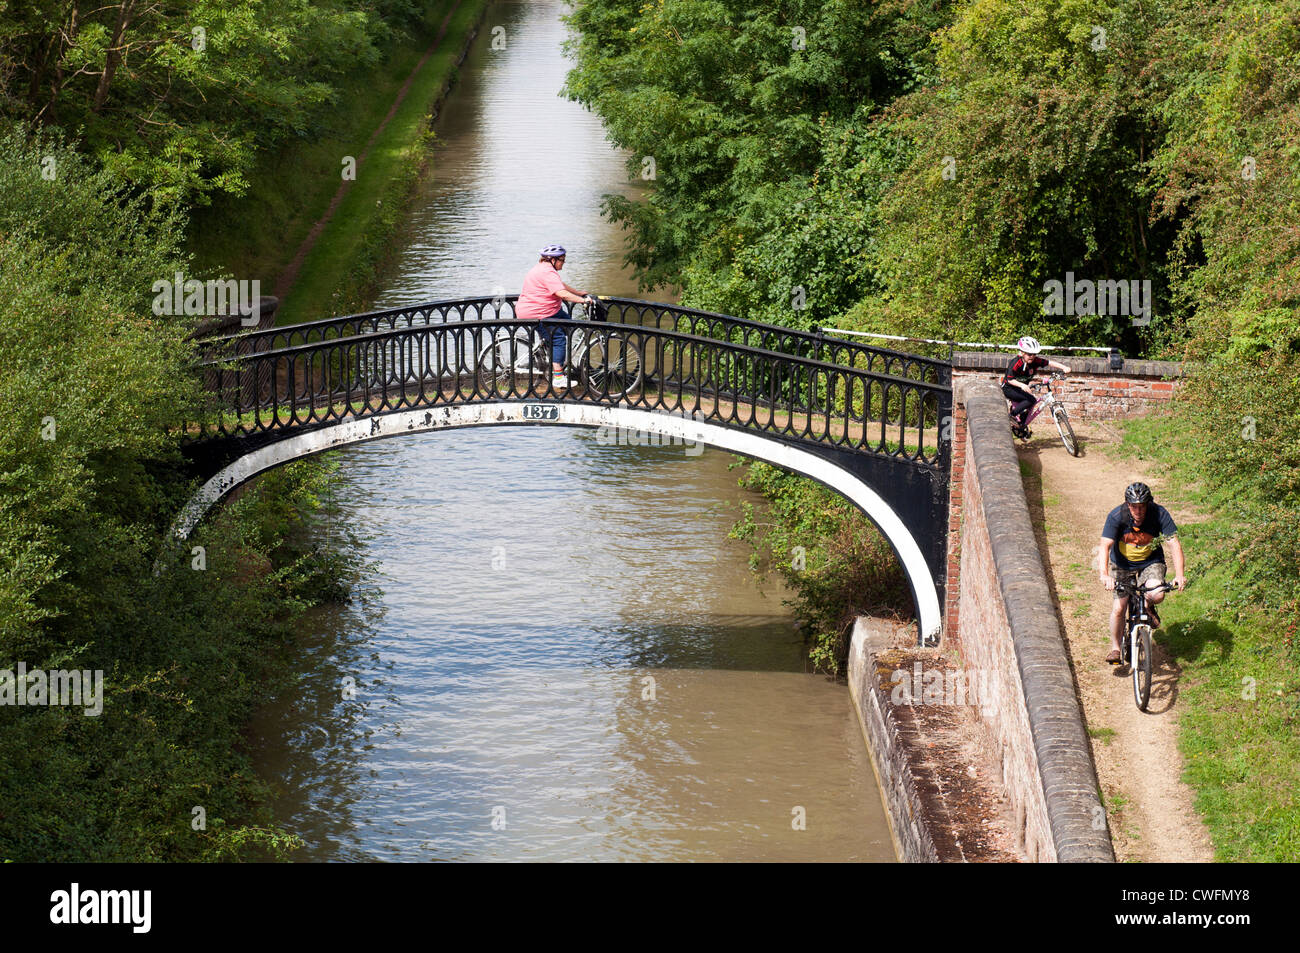 Cyclists on towpath of the Oxford Canal near Fenny Compton, Warwickshire, UK - Stock Image